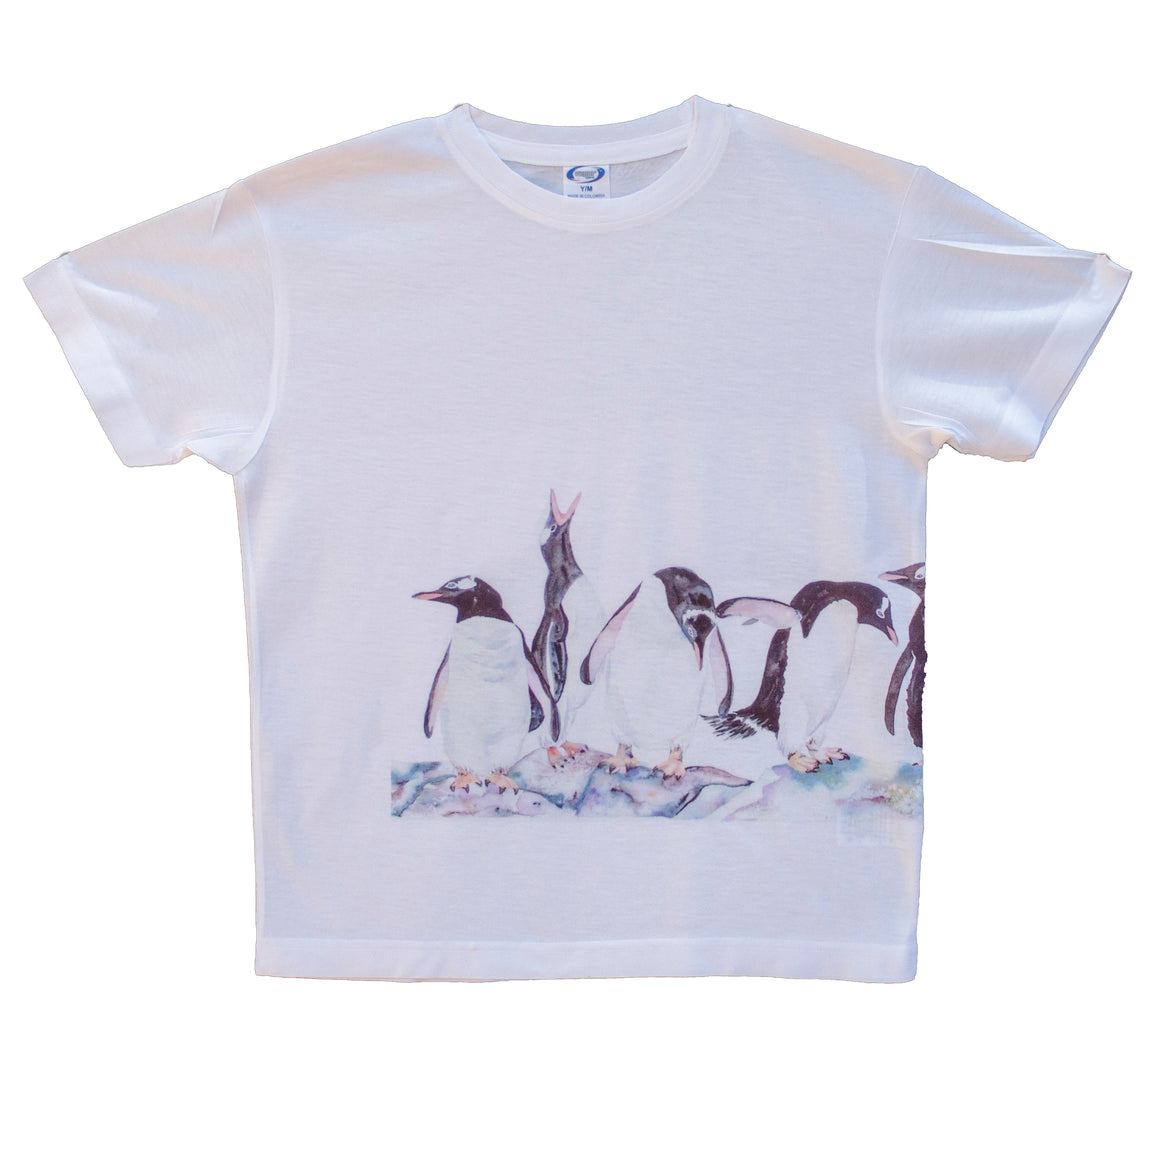 Who's Squawking?(Penguins) Women's Tshirt